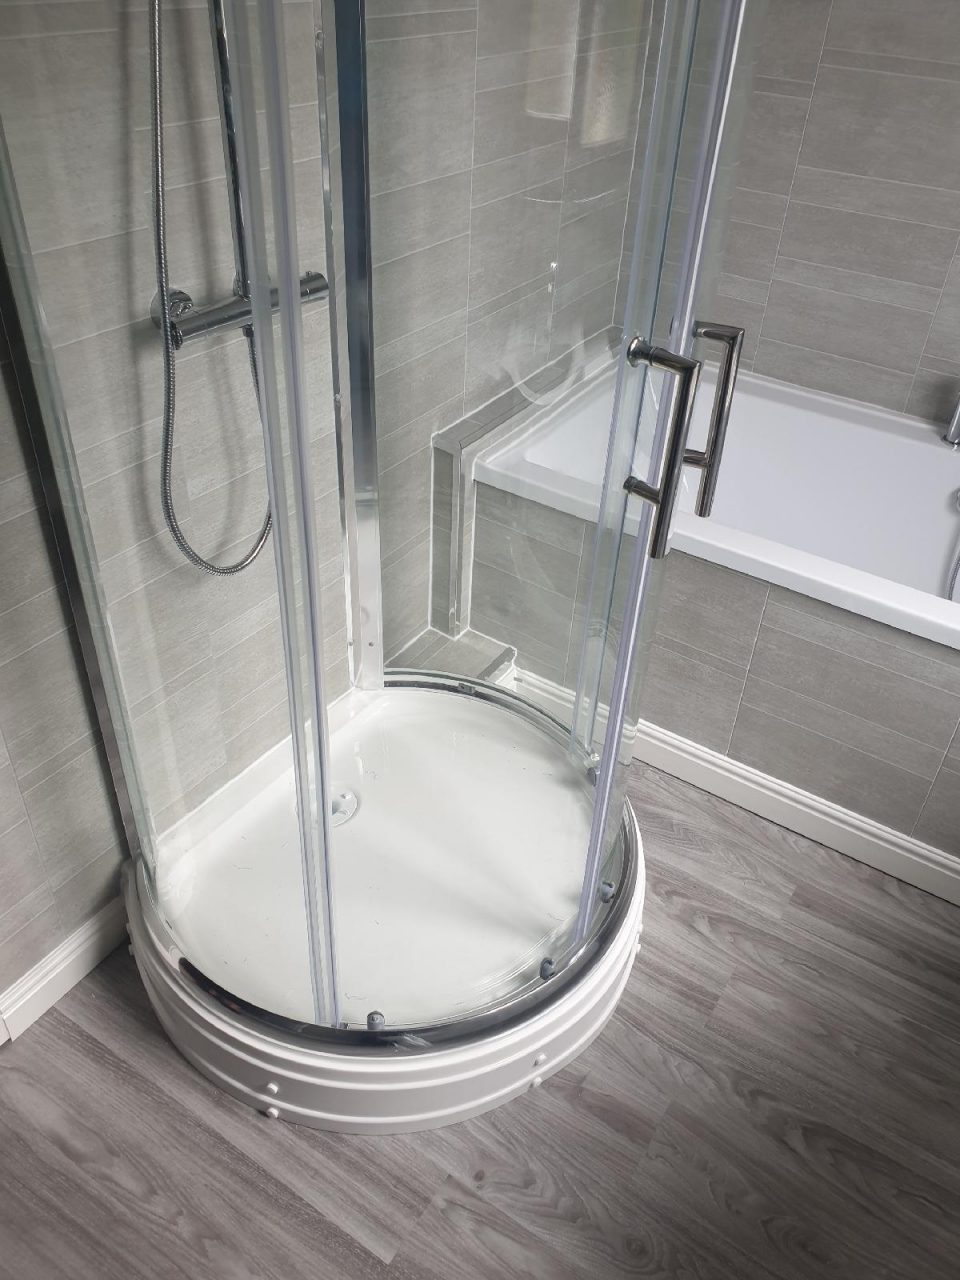 New Bathroom Mrs Wootton in Birmingham Round Shower Cubicle